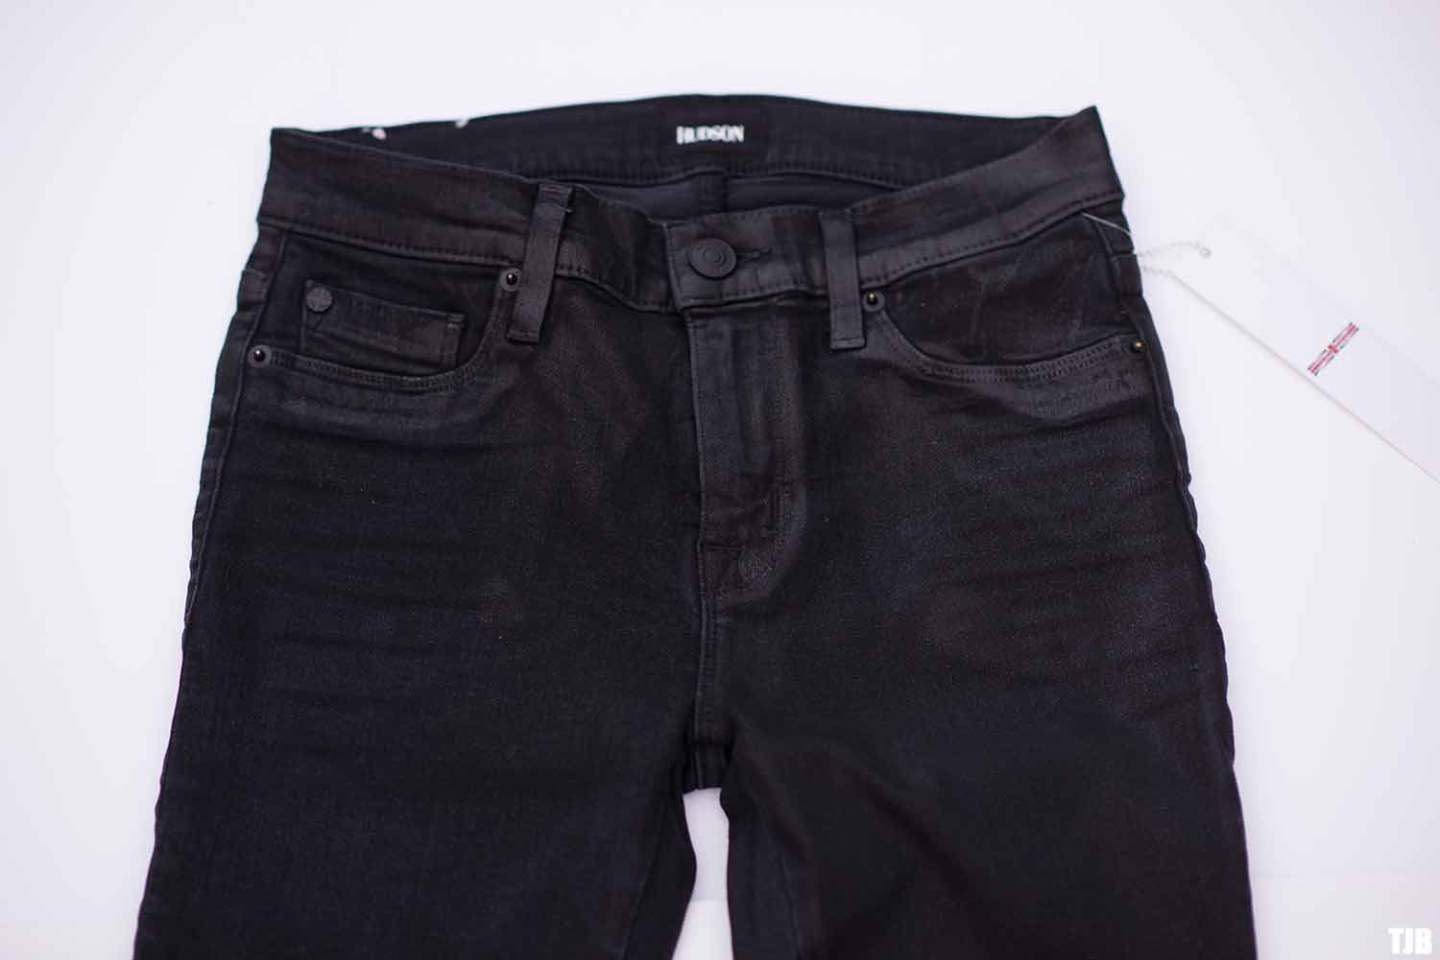 hudson-nix-skinny-lace-up-jeans-review-10